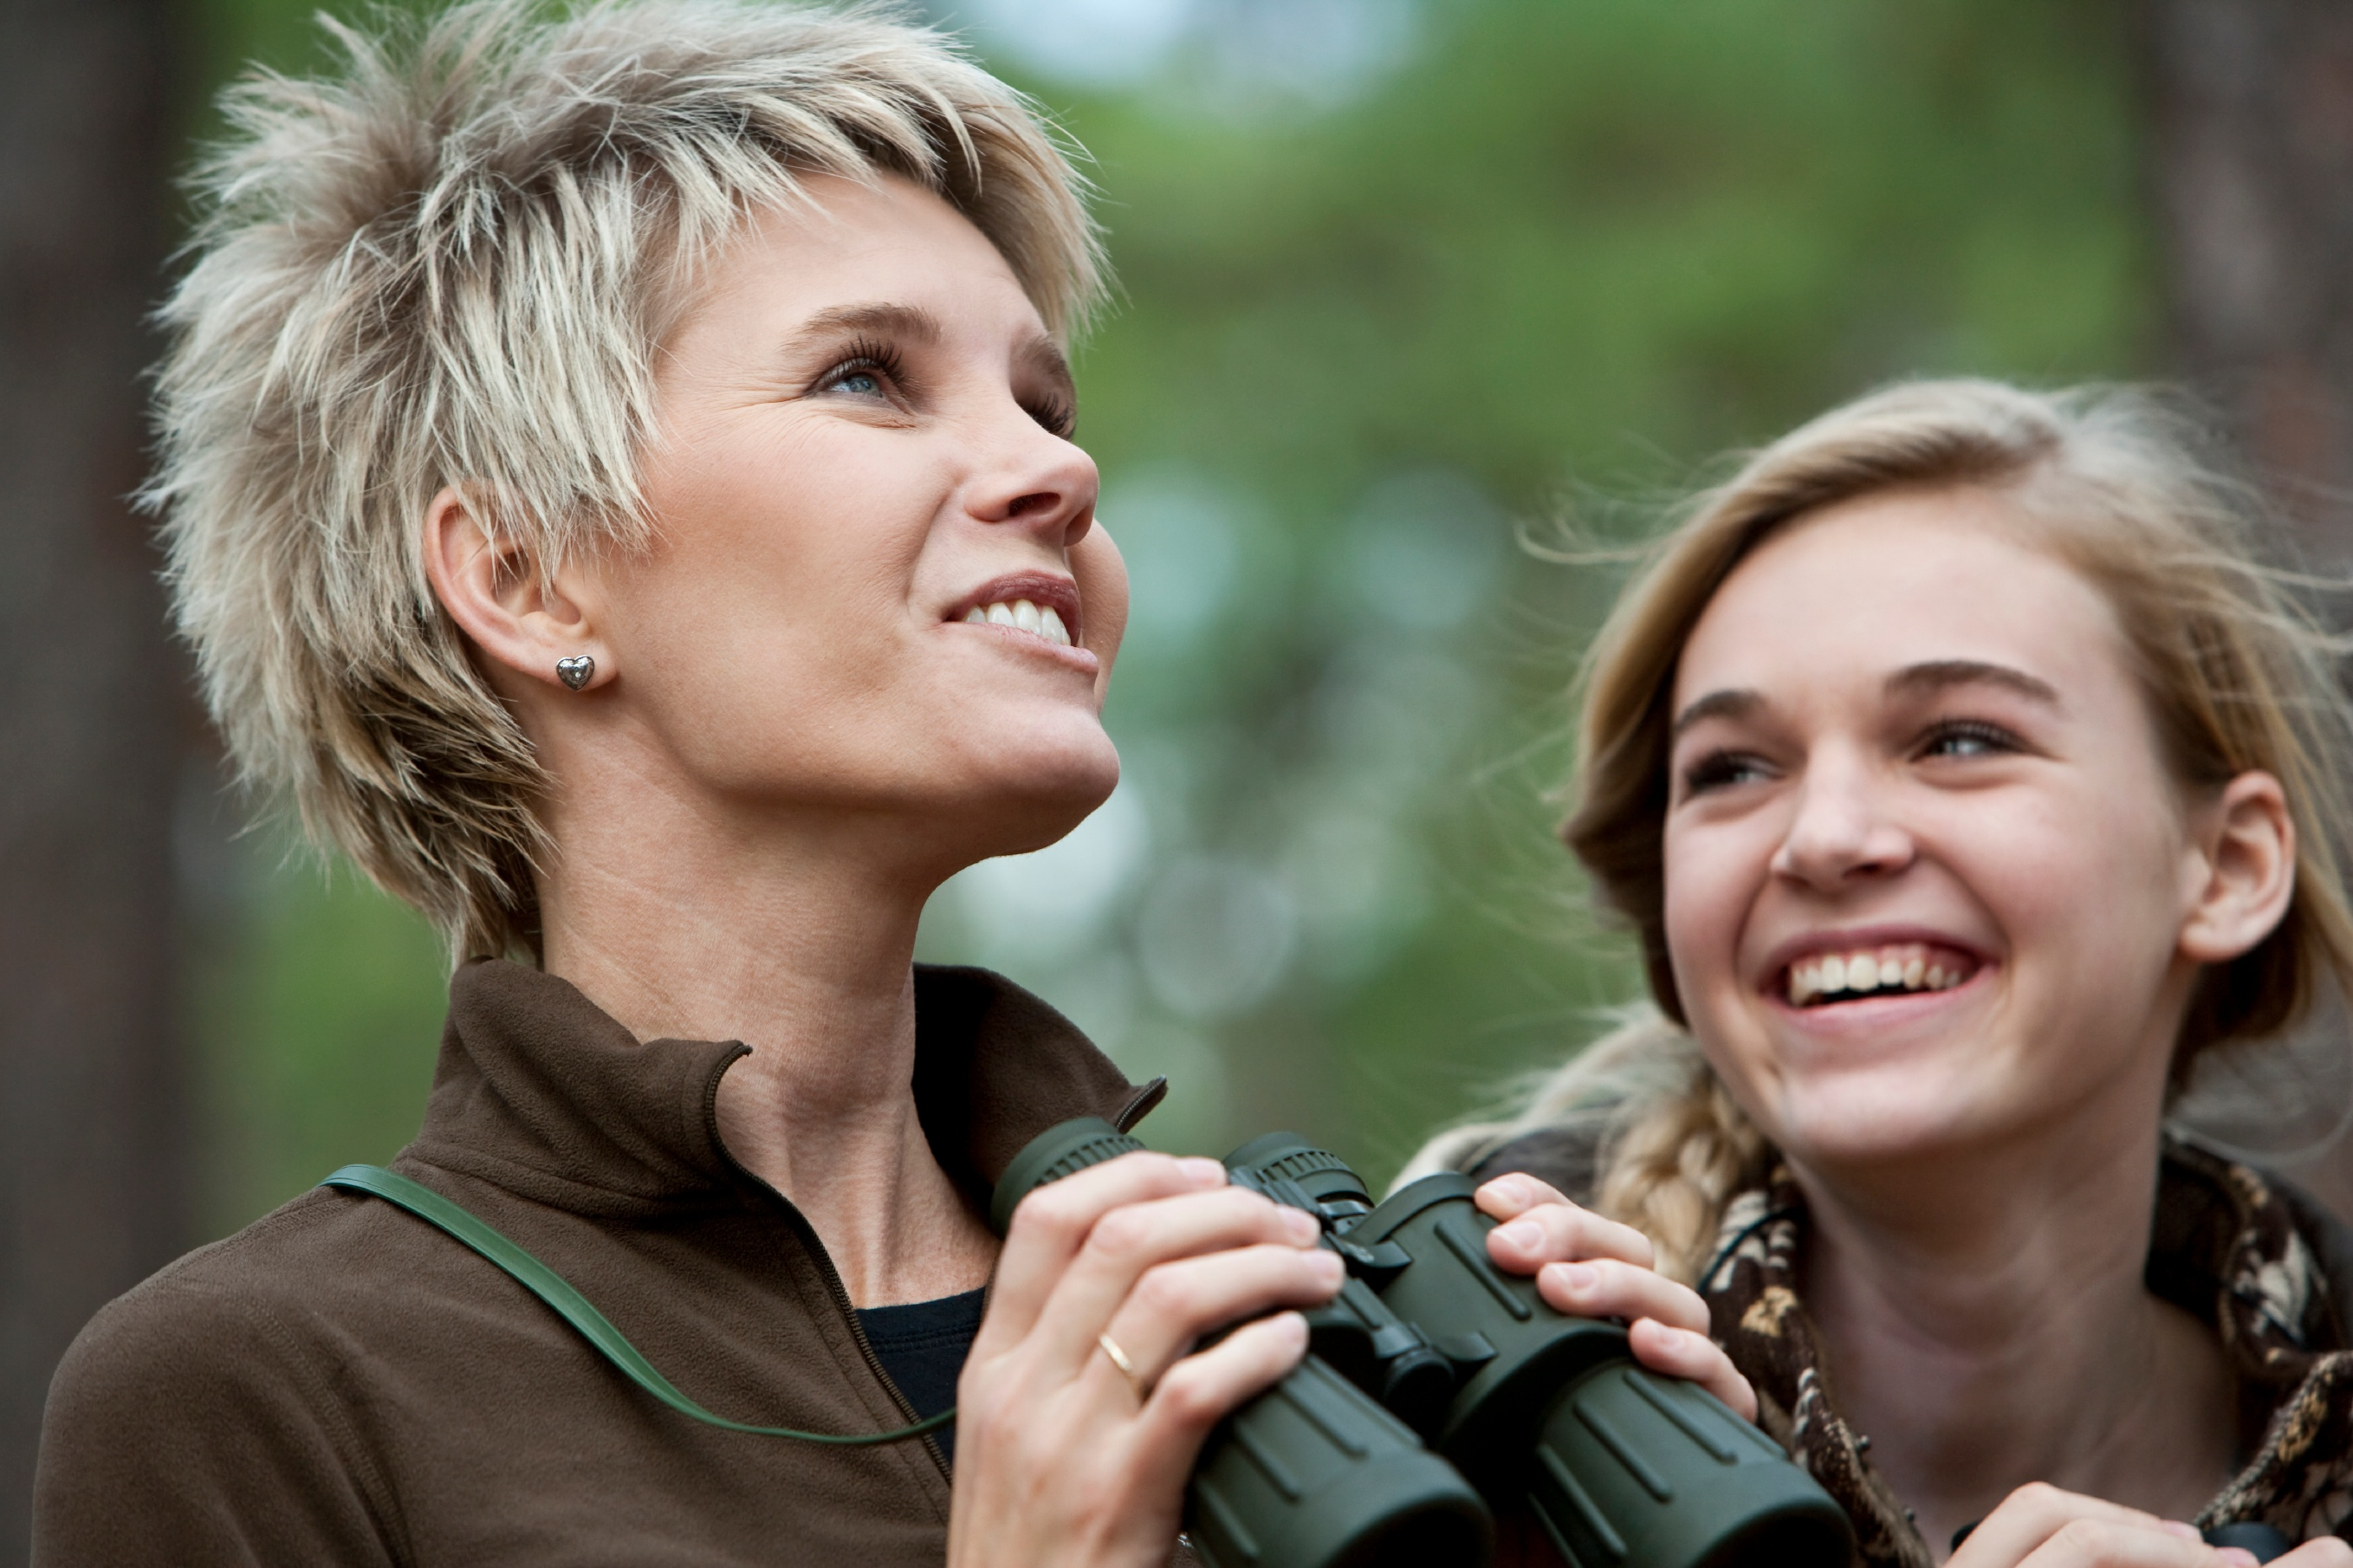 Mother-and-teen-daughter-enjoying-scenic-view-with-binoculars-000015544225_Large.jpg